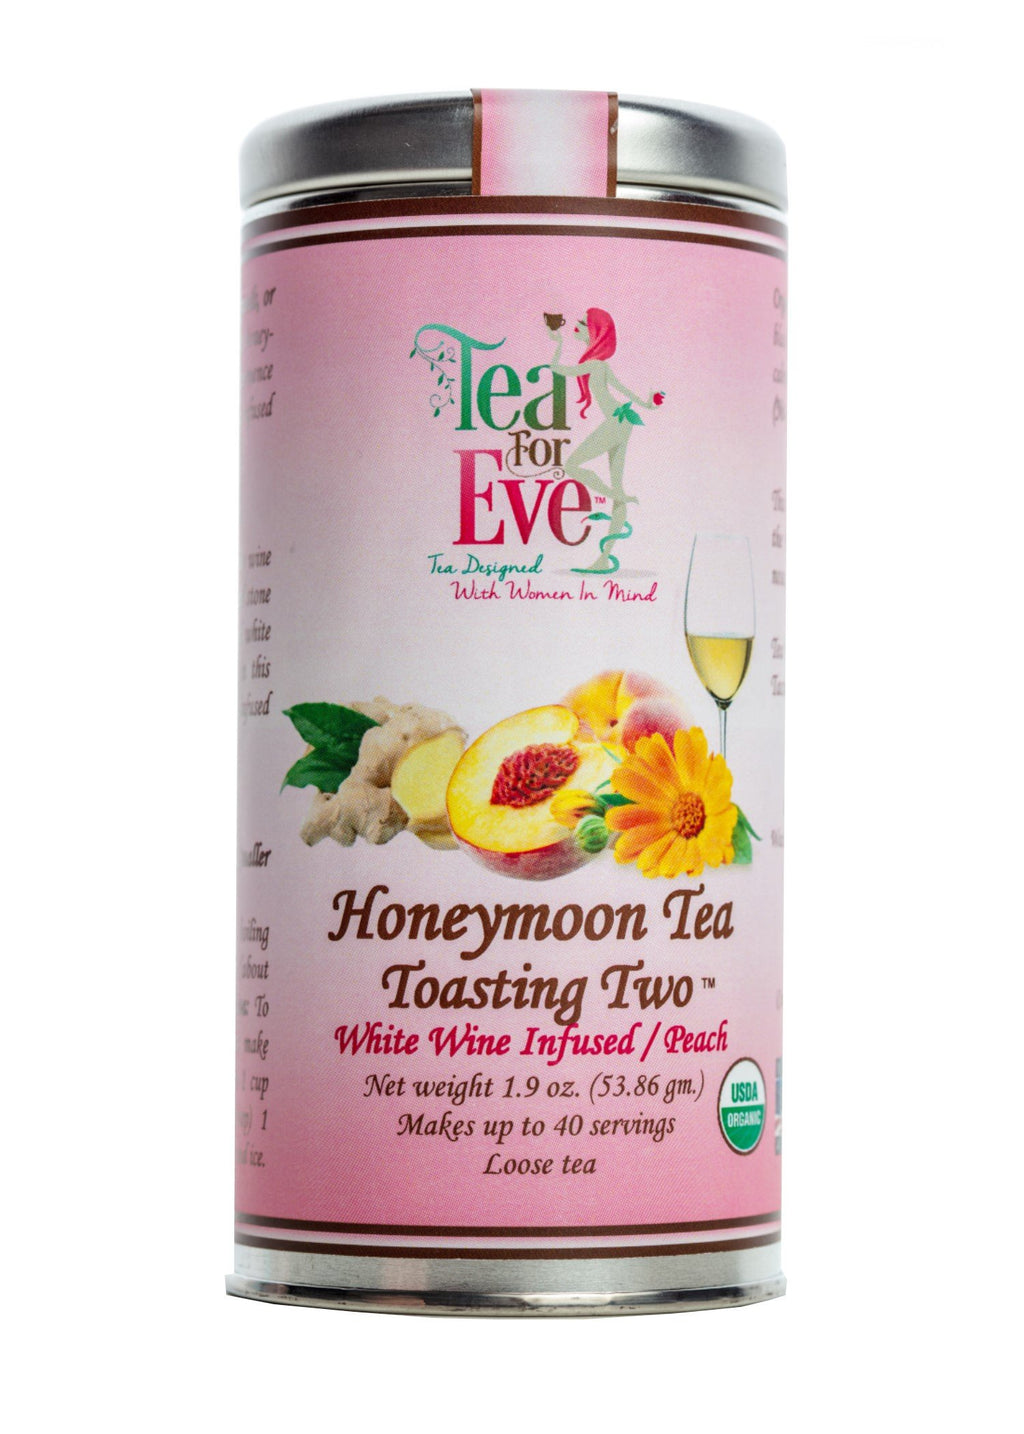 Honeymoon Tea-Toasting Two-White Wine Infused/Peach